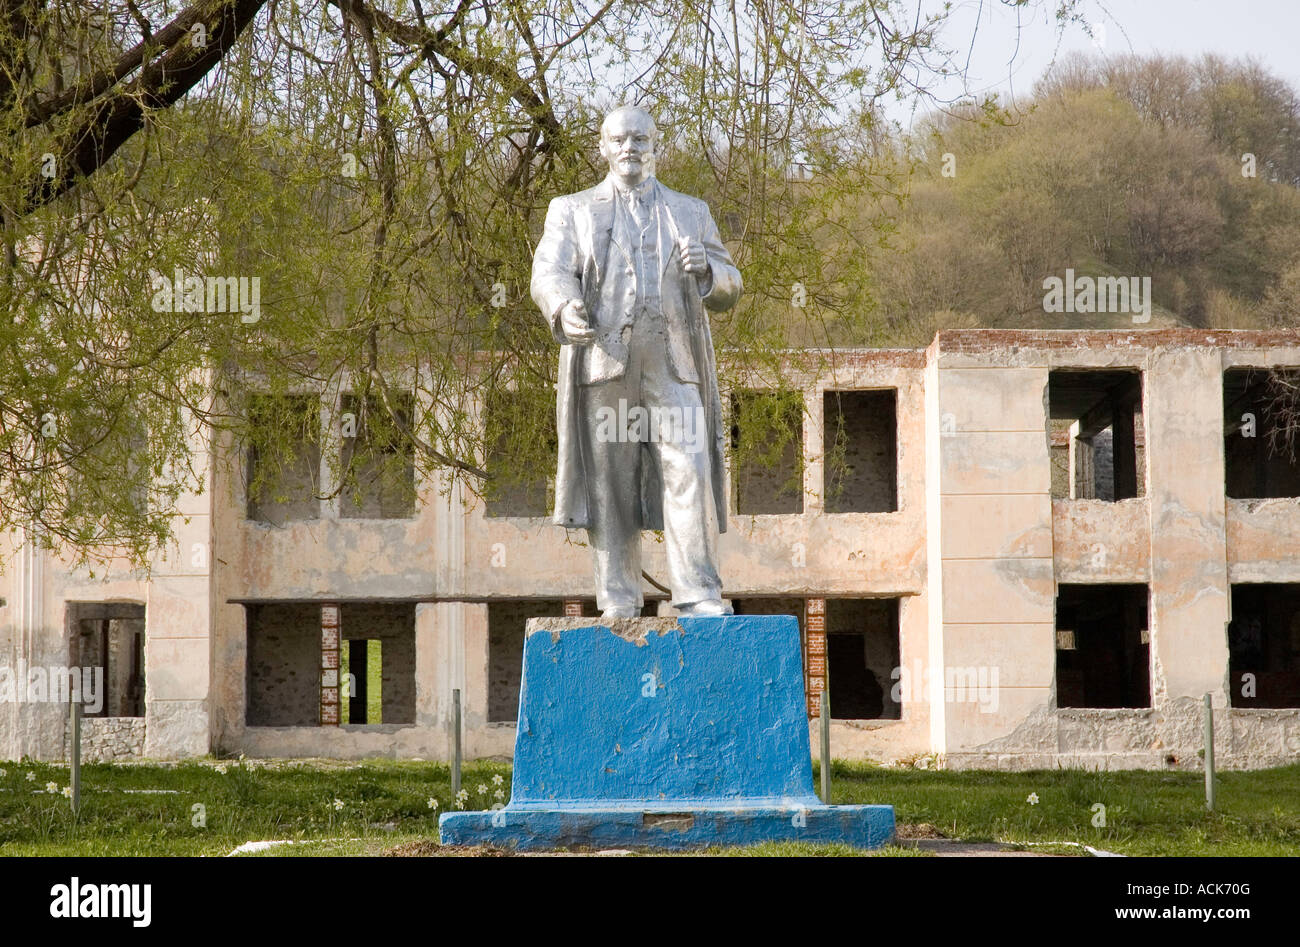 Lenin statue set against a ruin in the North Caucasus of South Western Russia - Stock Image